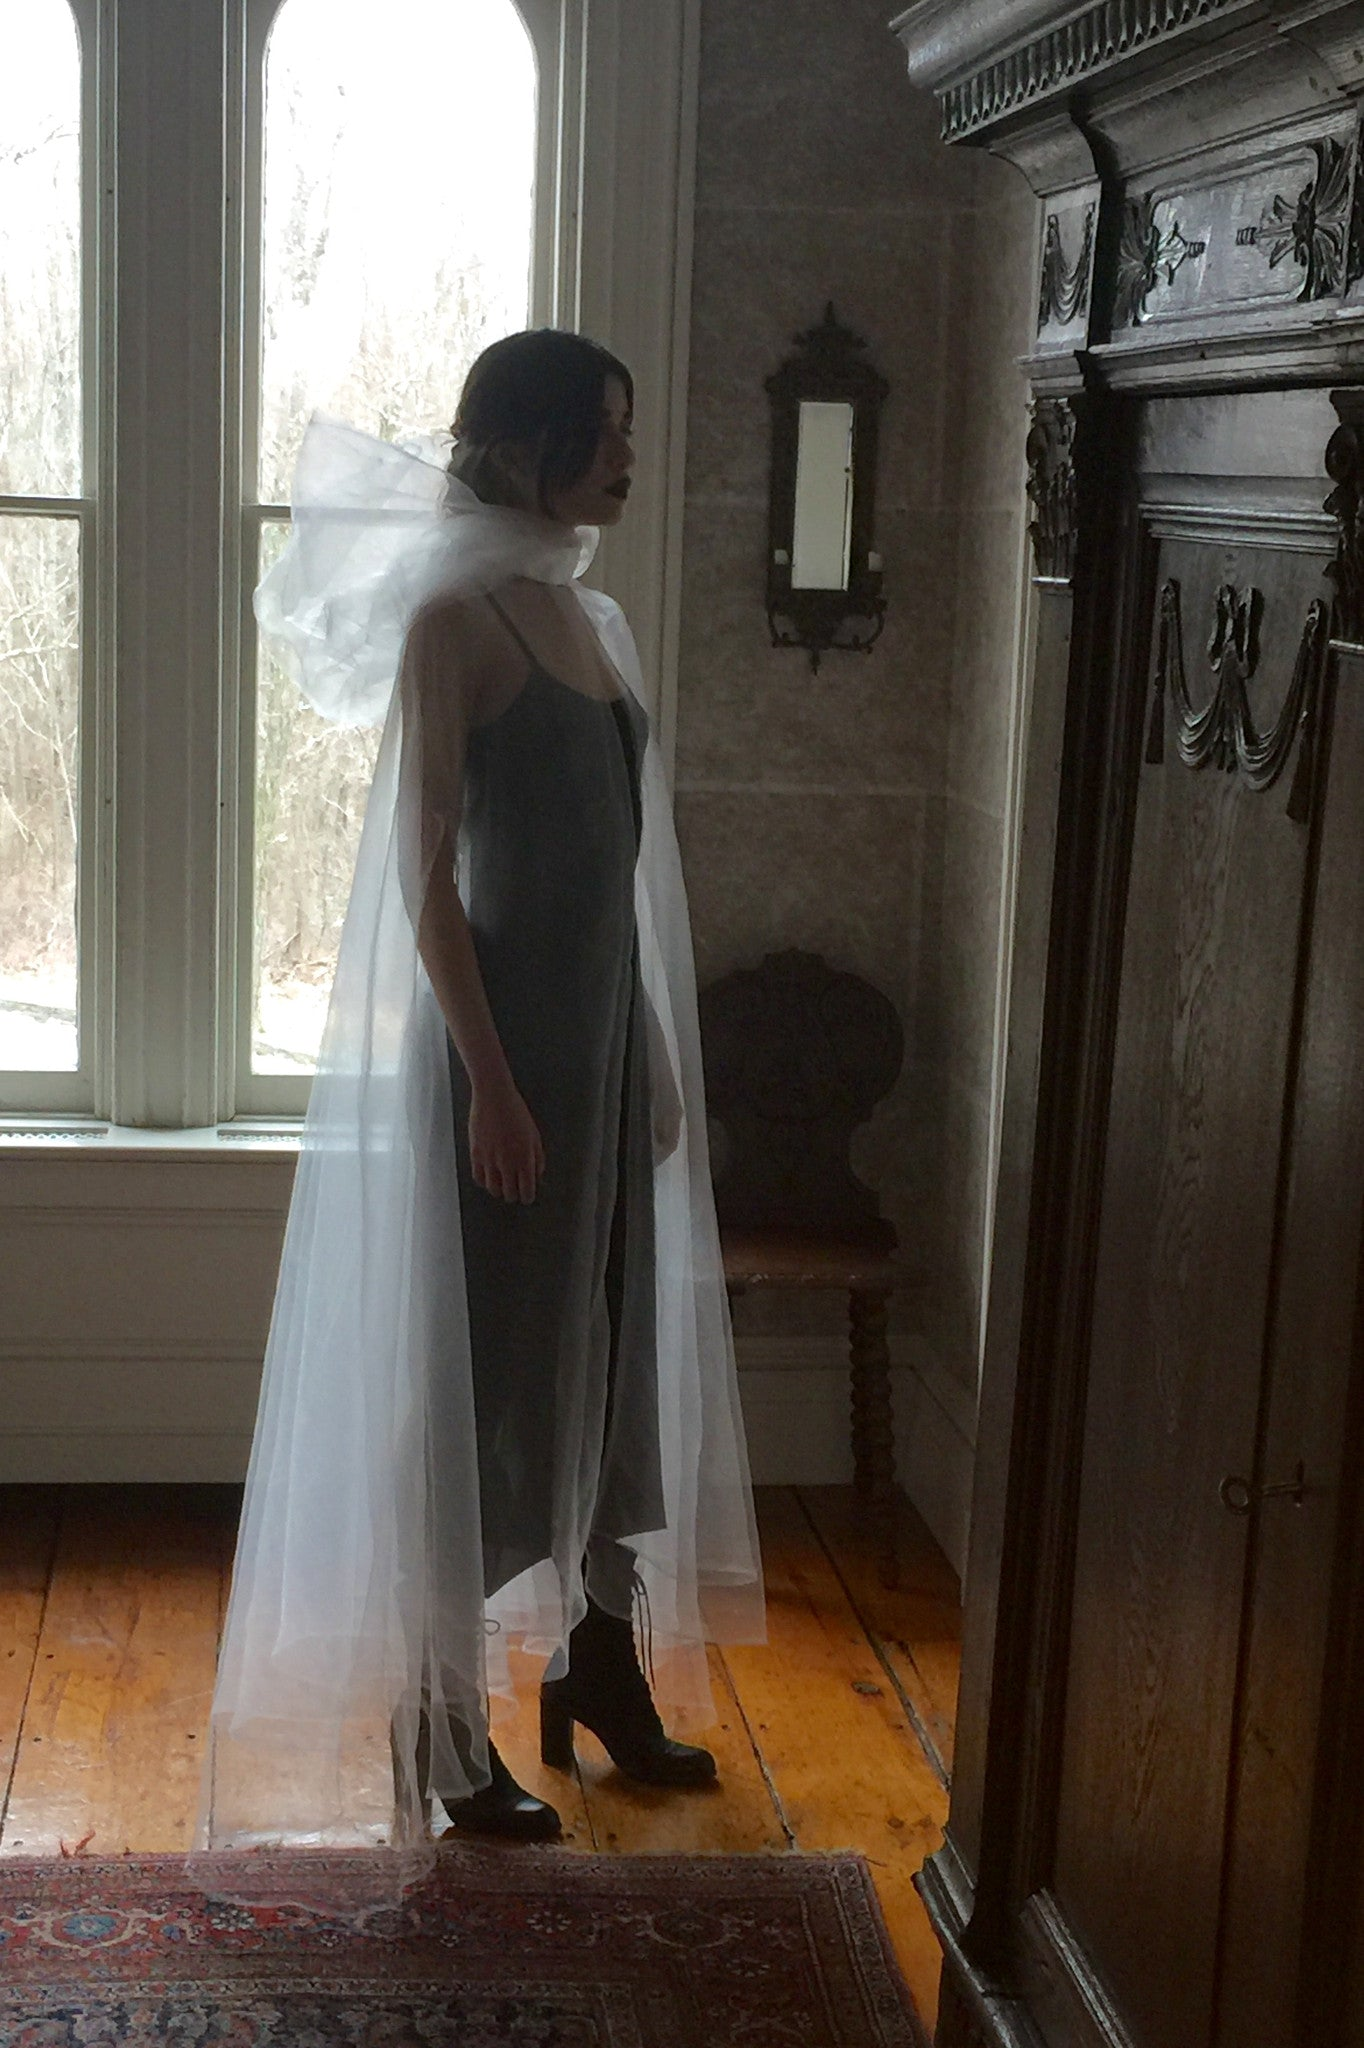 Vanessa M. IMG Model Wendy Nichol Clothing Designer Made to Order Custom Tailoring Made to Measure Handmade in NYC New York City Fashion Runway Show AW16 13 Incarnations White Ghost Edwardian Sheer Organza Hooded Hood Cape Cloak Satin Bow Bride Wedding Veil cover Victorian Edwardian Gothic sheer chiffon Ruche Ankle Jumper Jumpsuit Summer